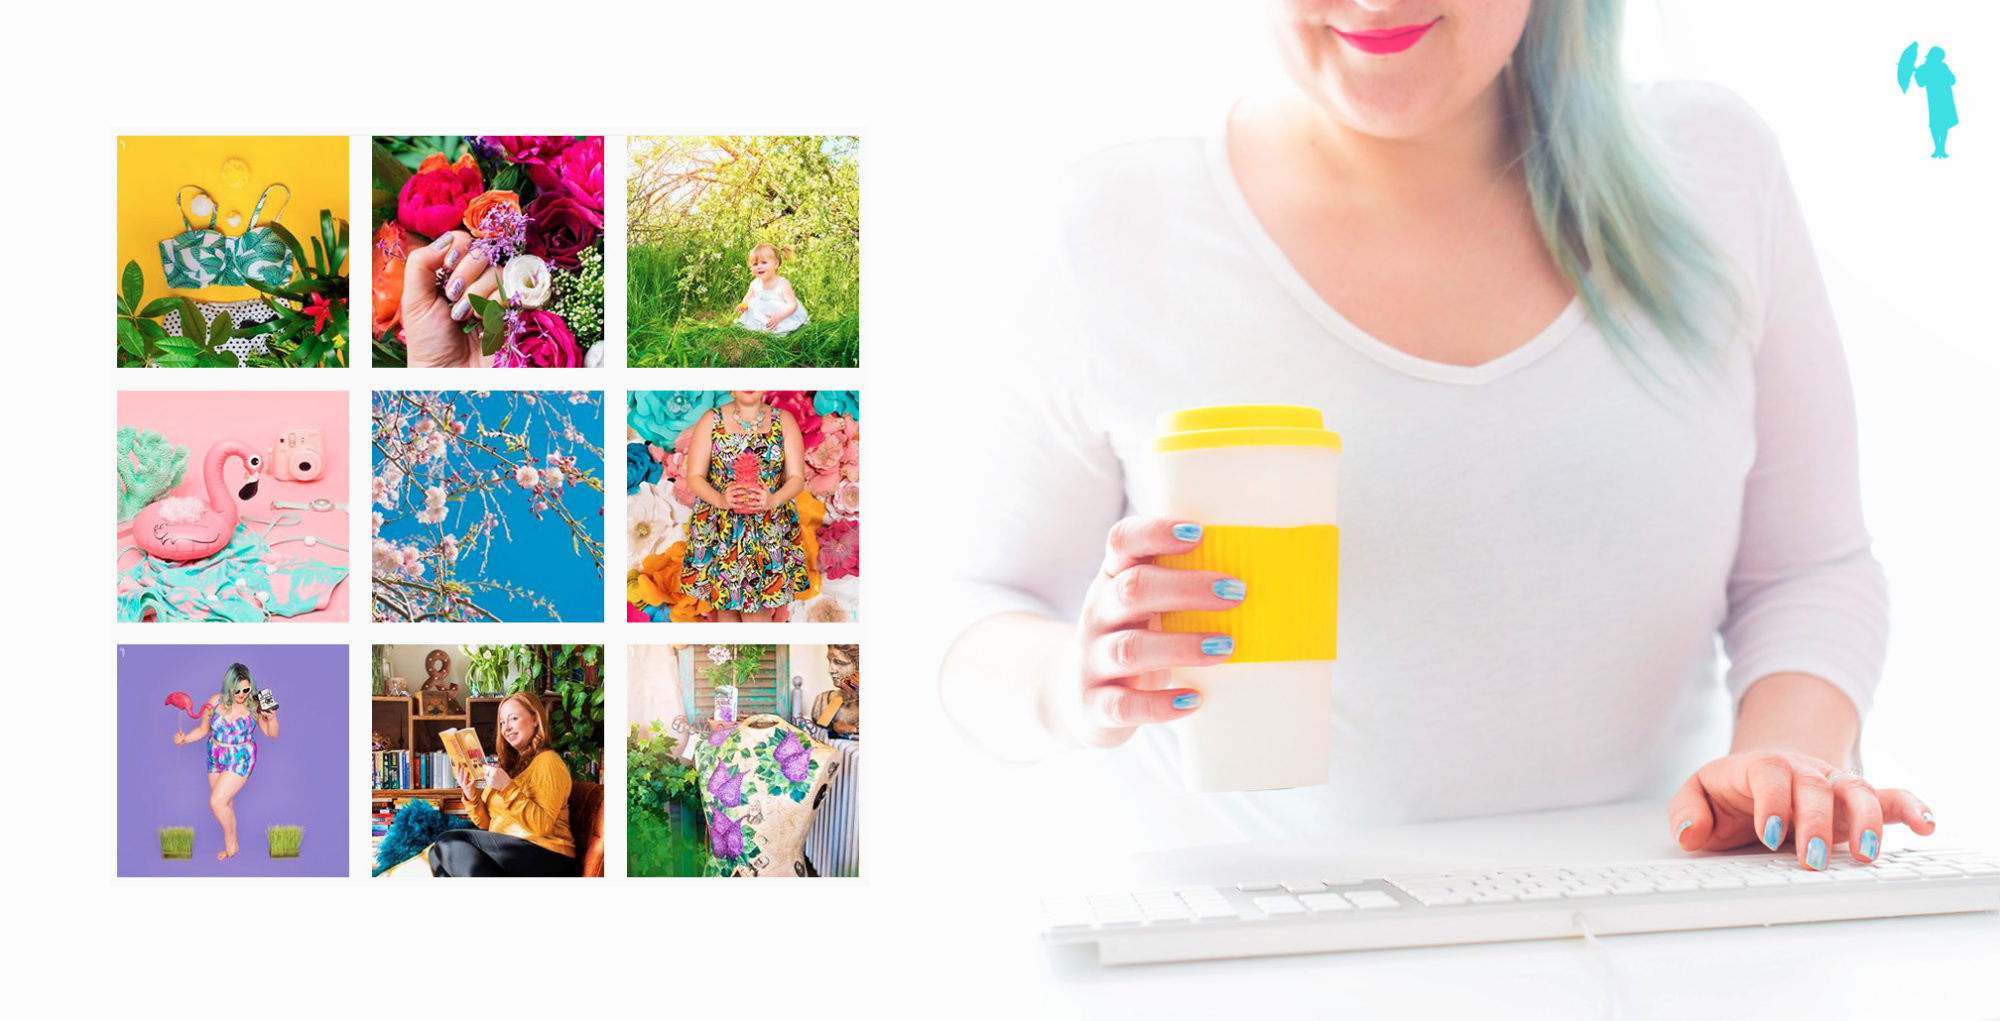 Emily Beatty Imagery – The Blog   FUN FRESH PHOTOGRAPHY SINCE 2008